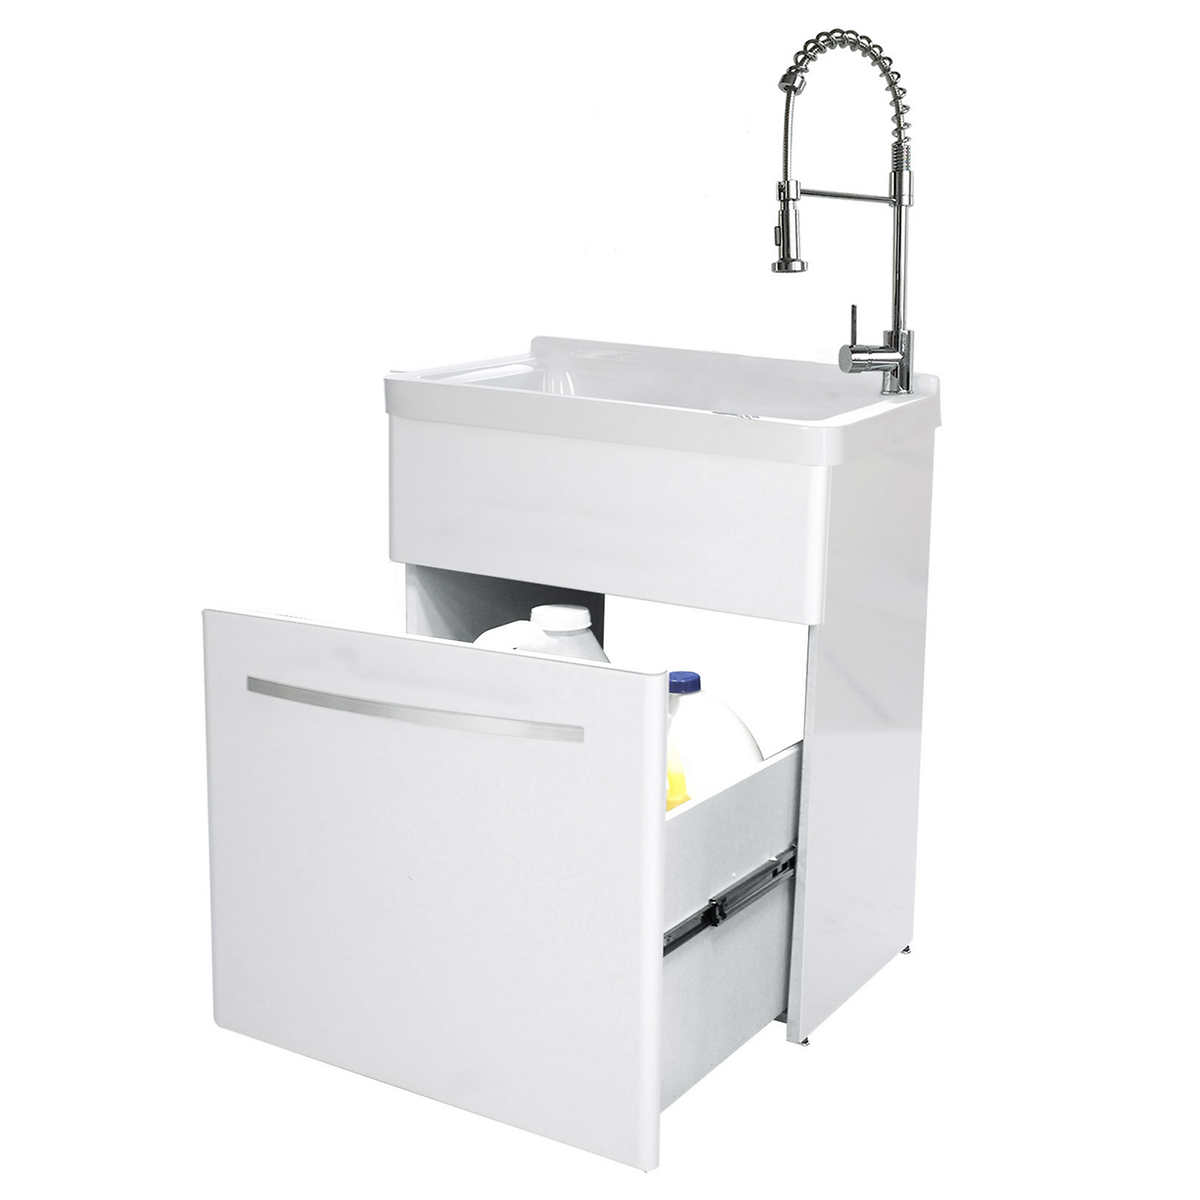 Laundry Tub With Cabinet Costco Cabinets Decorating Ideas